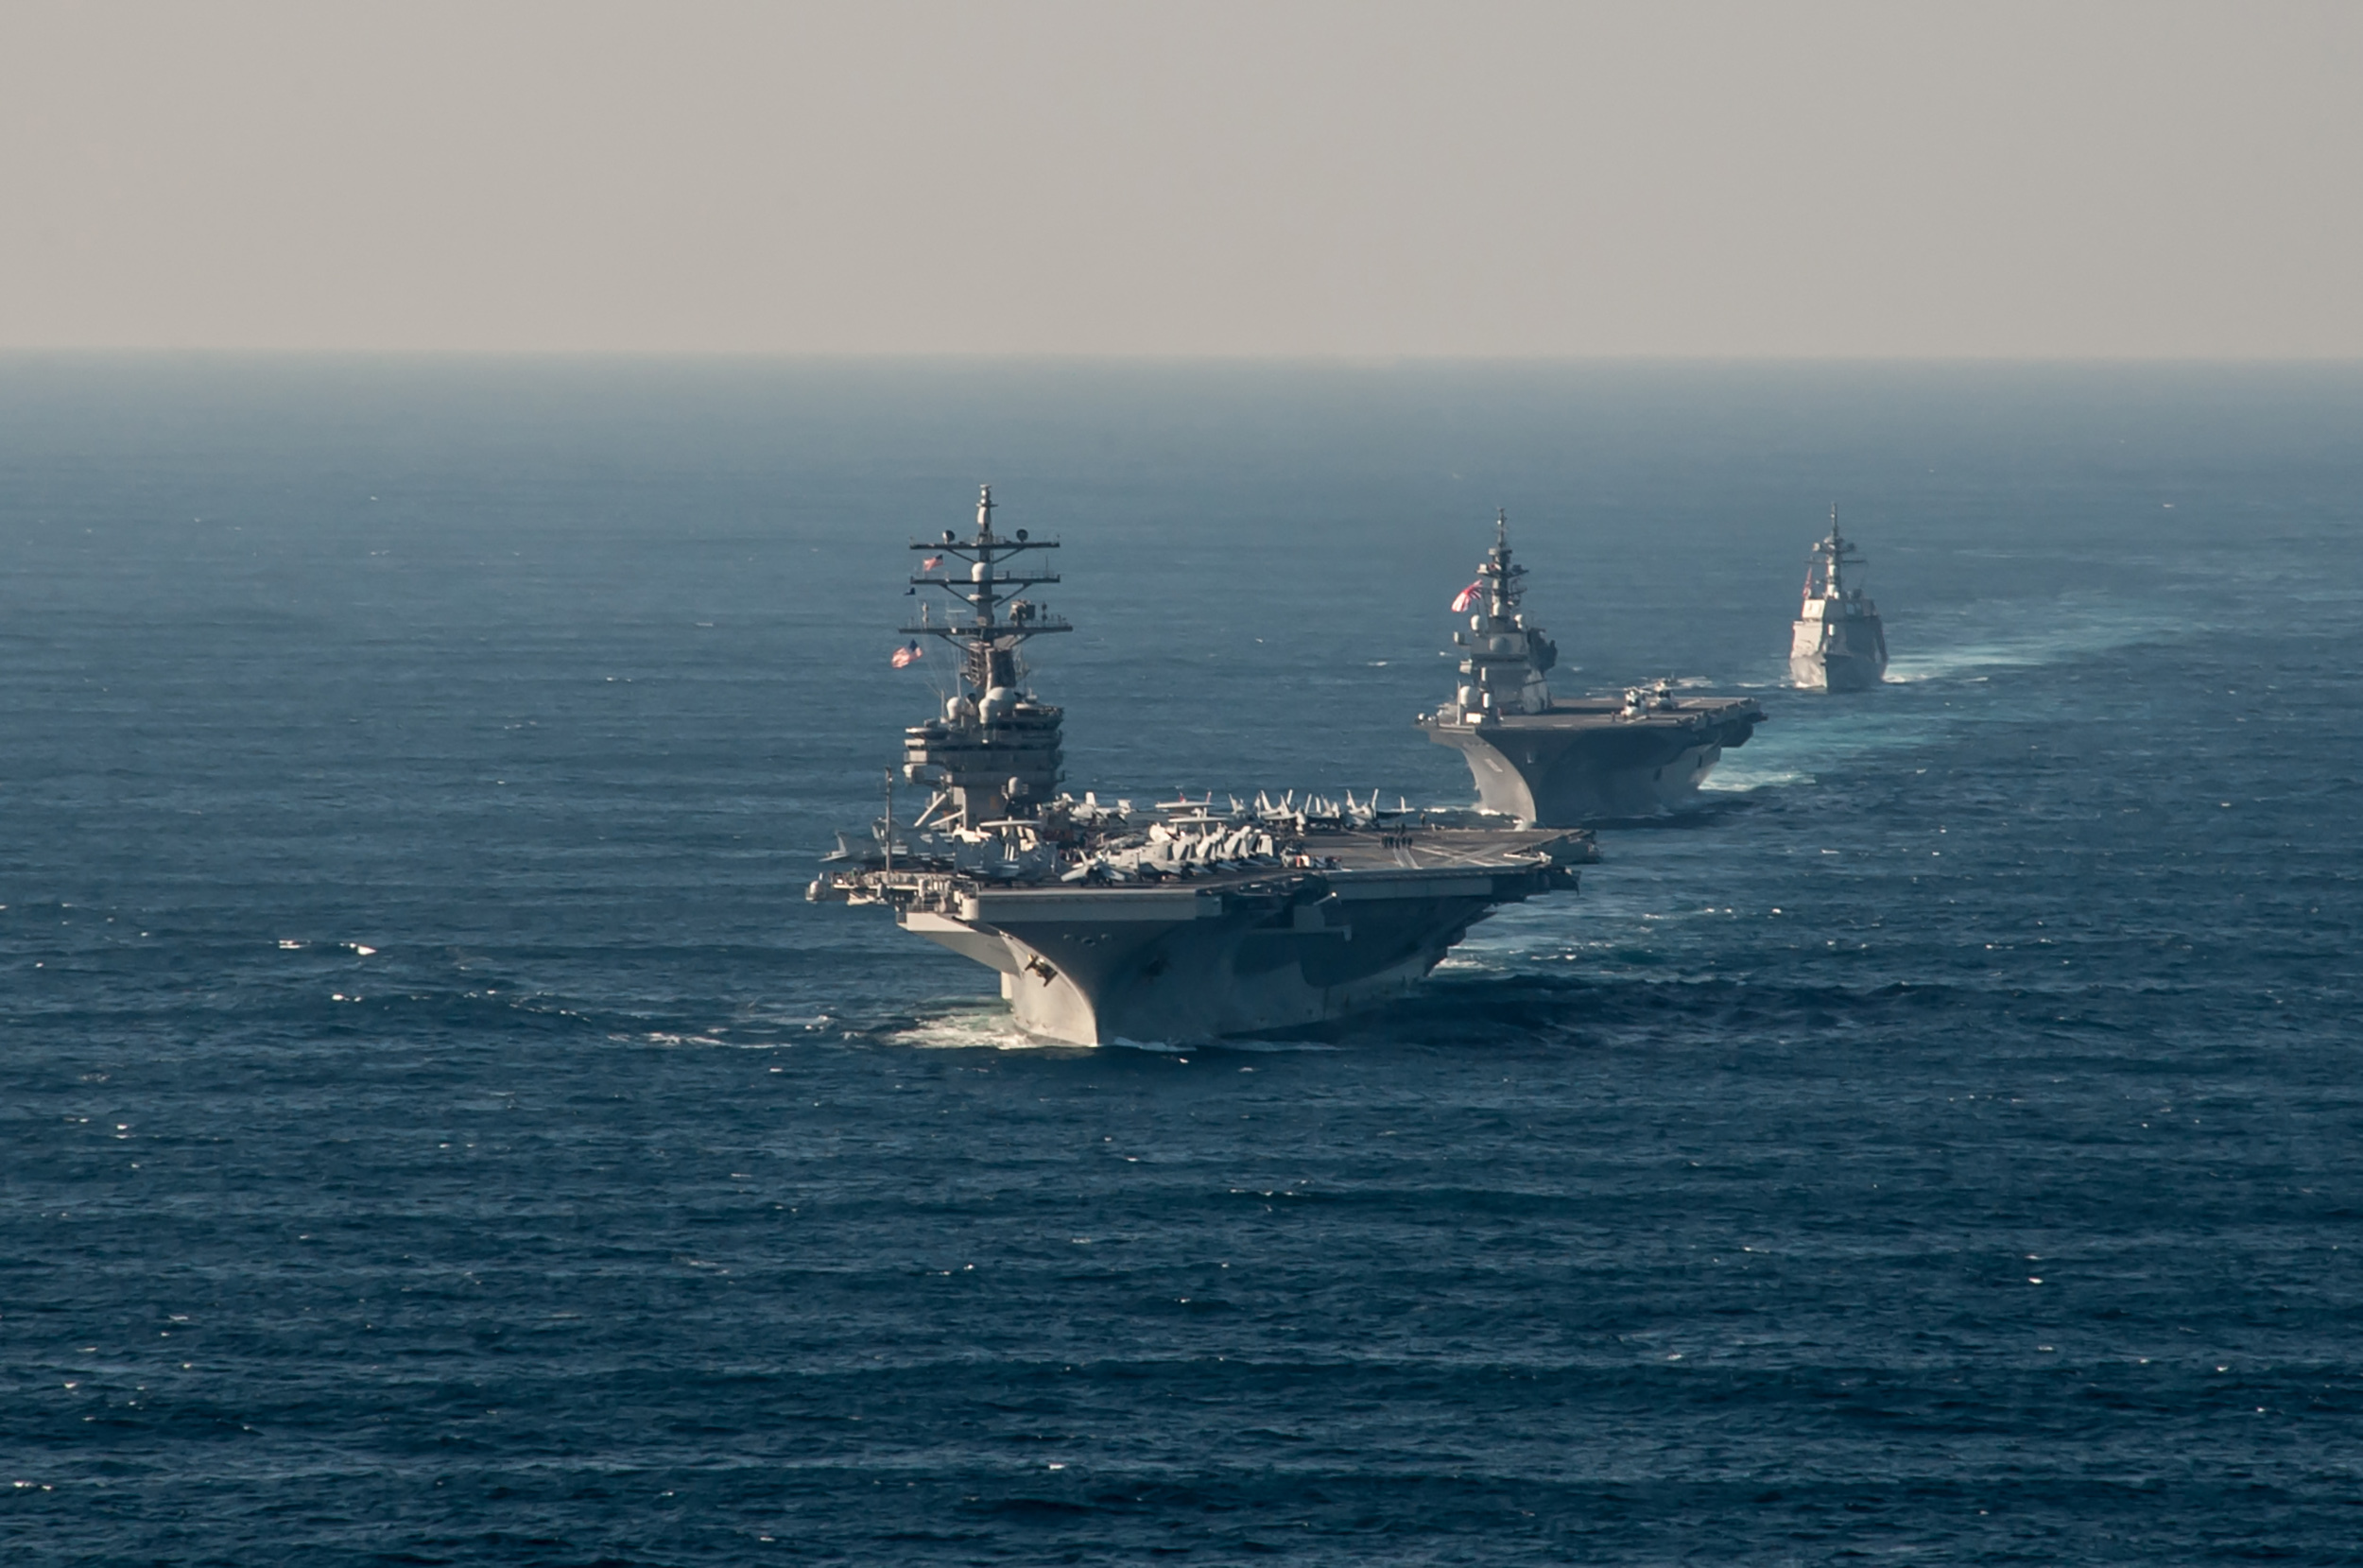 USS Ronald Reagan (CVN-76) transits alongside Japan Maritime Self-Defense Force (JMSDF) Izumo-class helicopter destroyer JS Izumo (DDH 183) and JMSDF Akizuki-class destroyer JS Teruzuki (DD 116) on Oct. 18, 2015. US Navy Photo